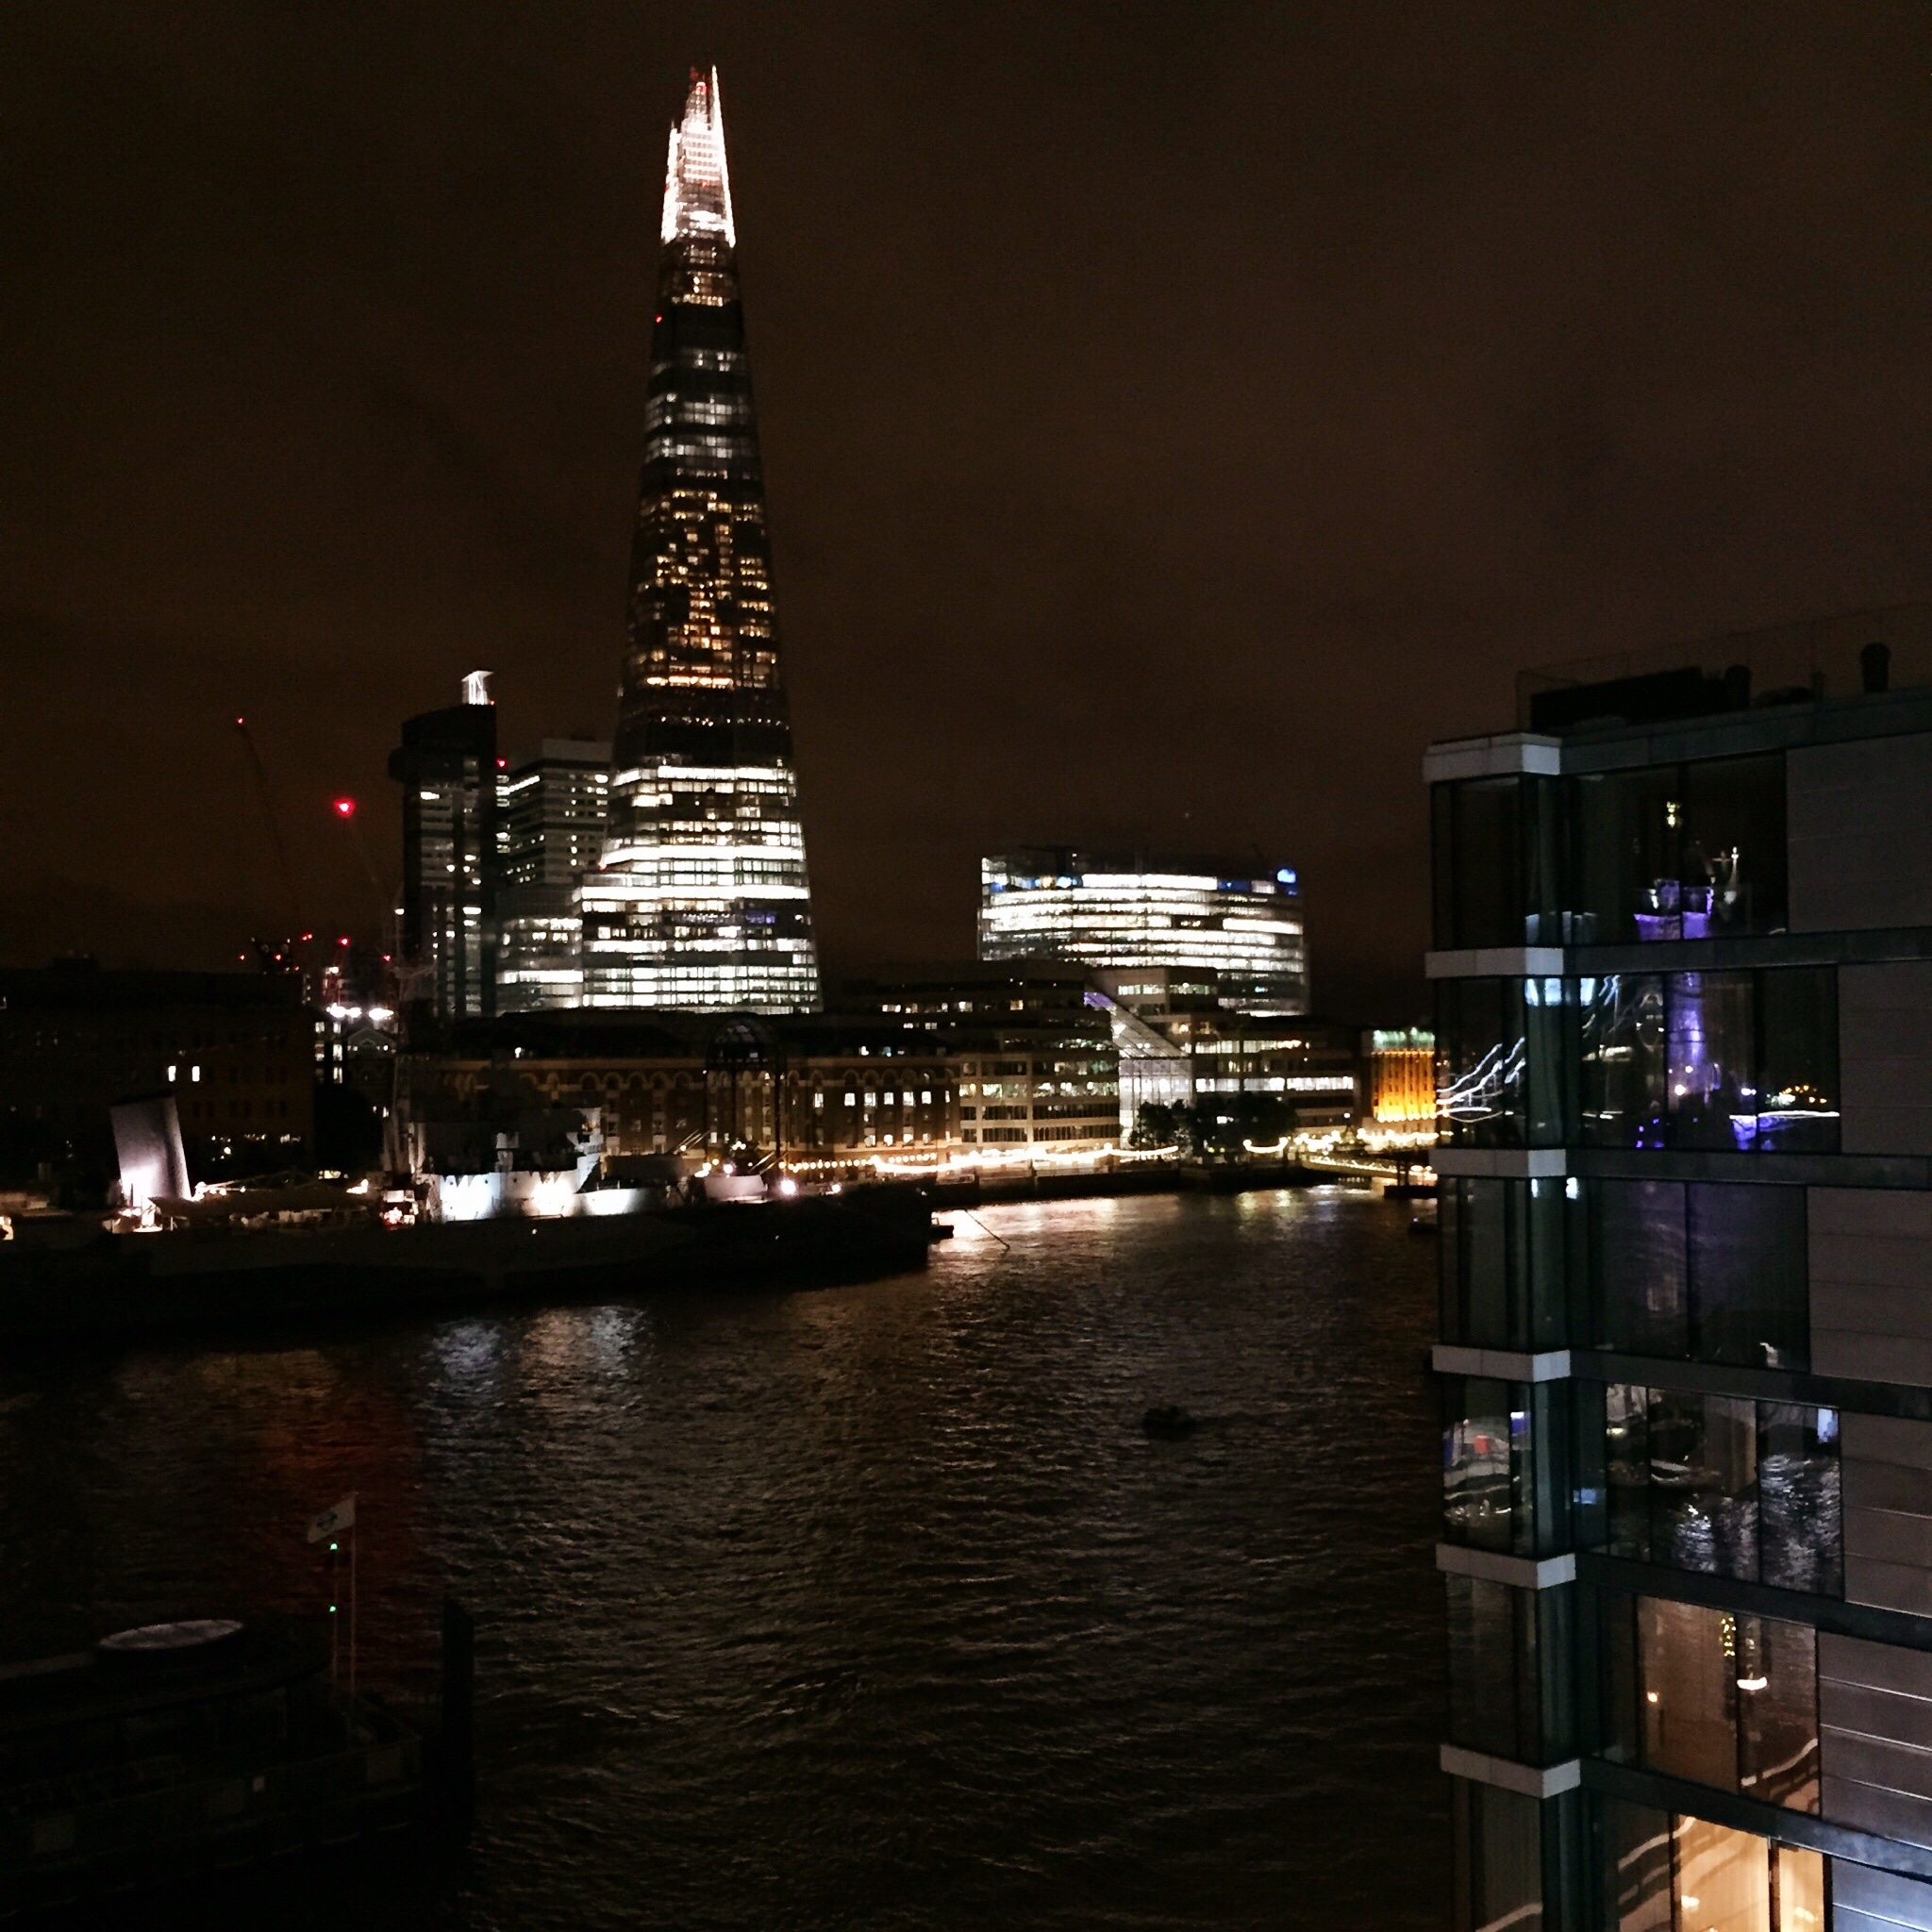 the shard at night. view from our hotel balcony